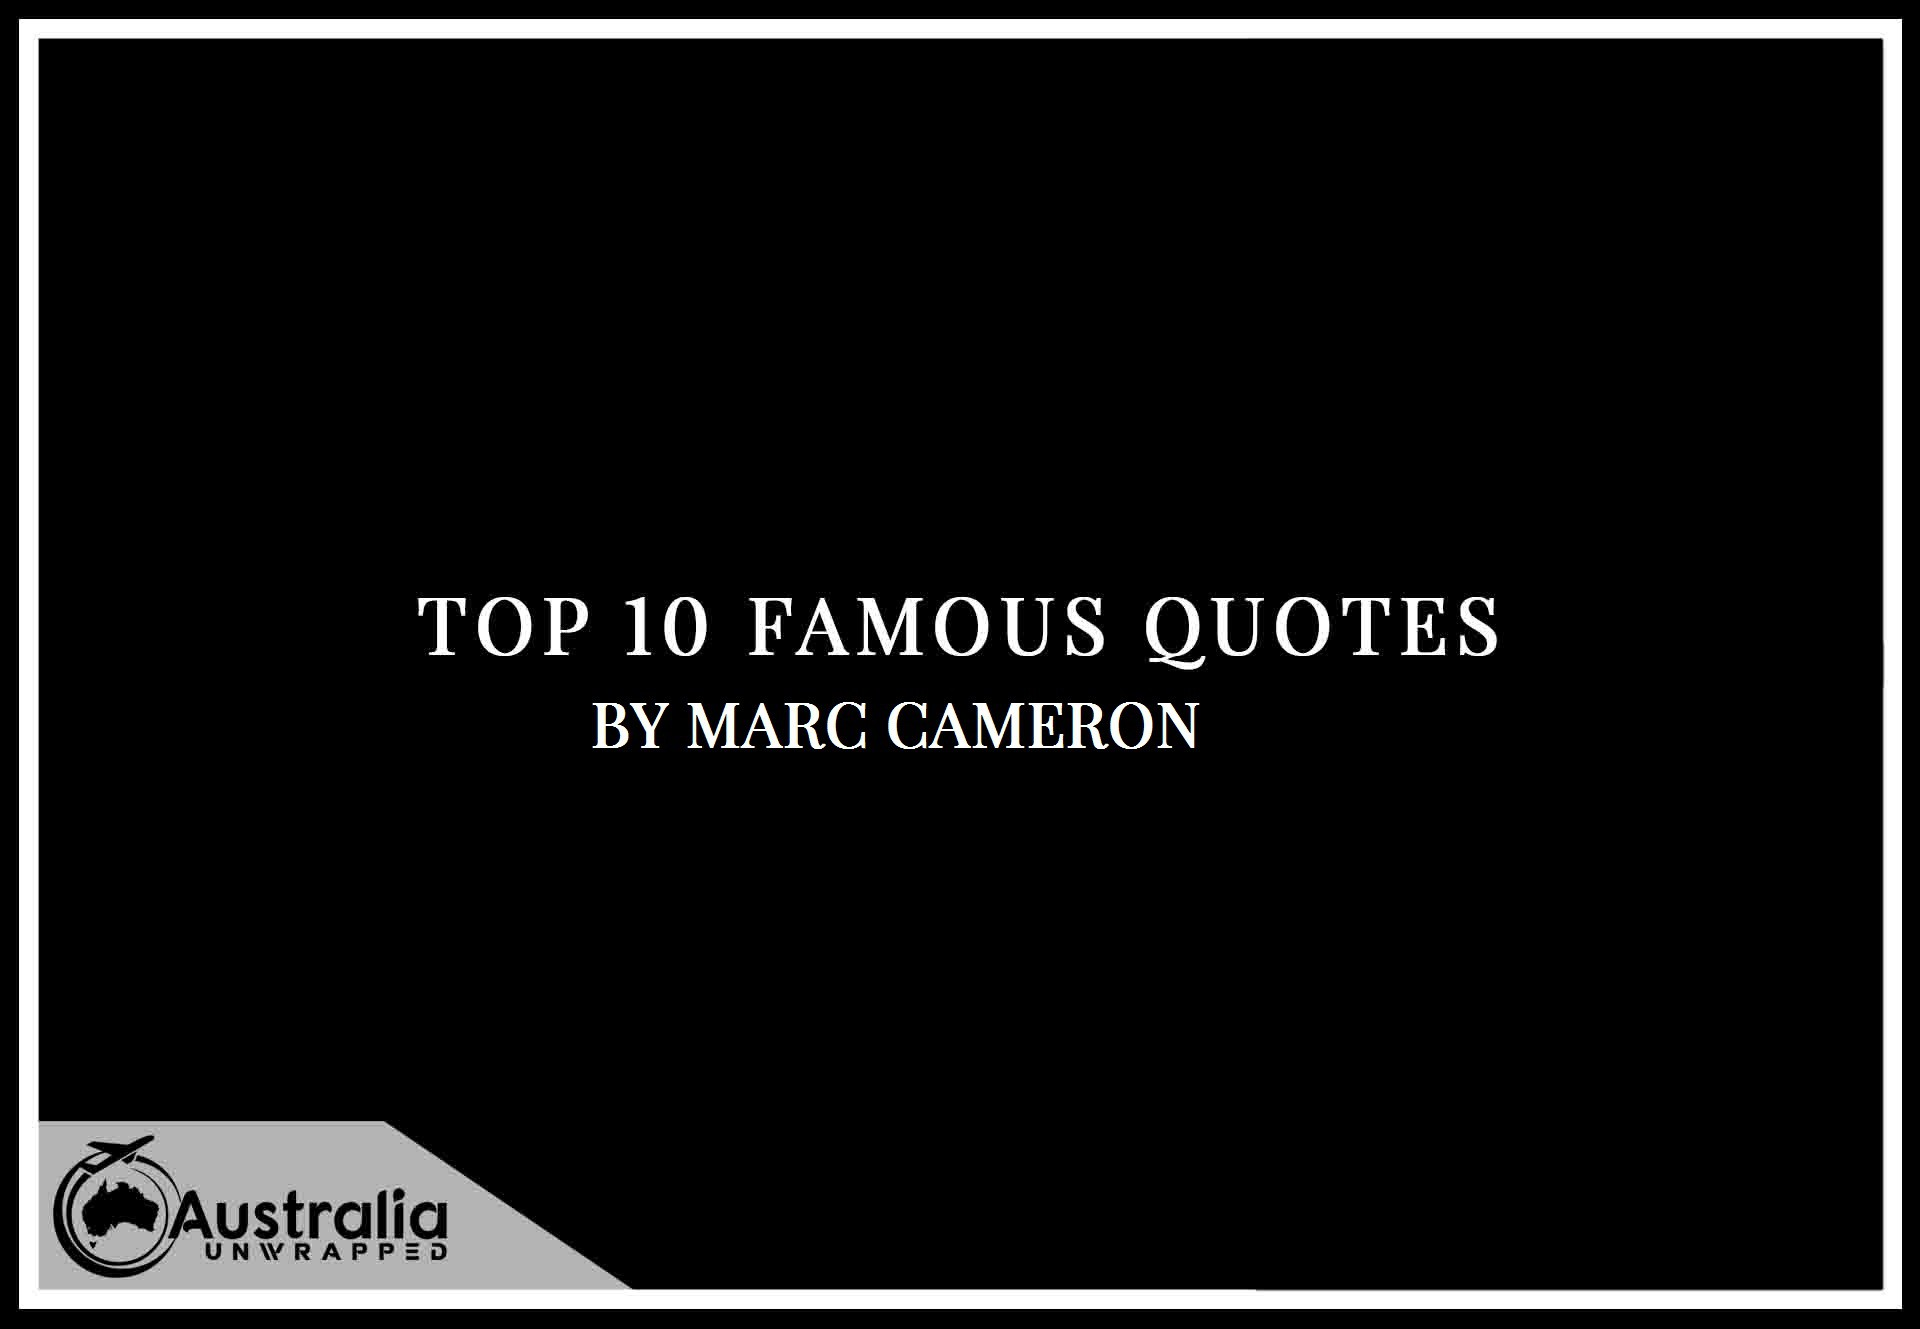 Marc Cameron's Top 10 Popular and Famous Quotes